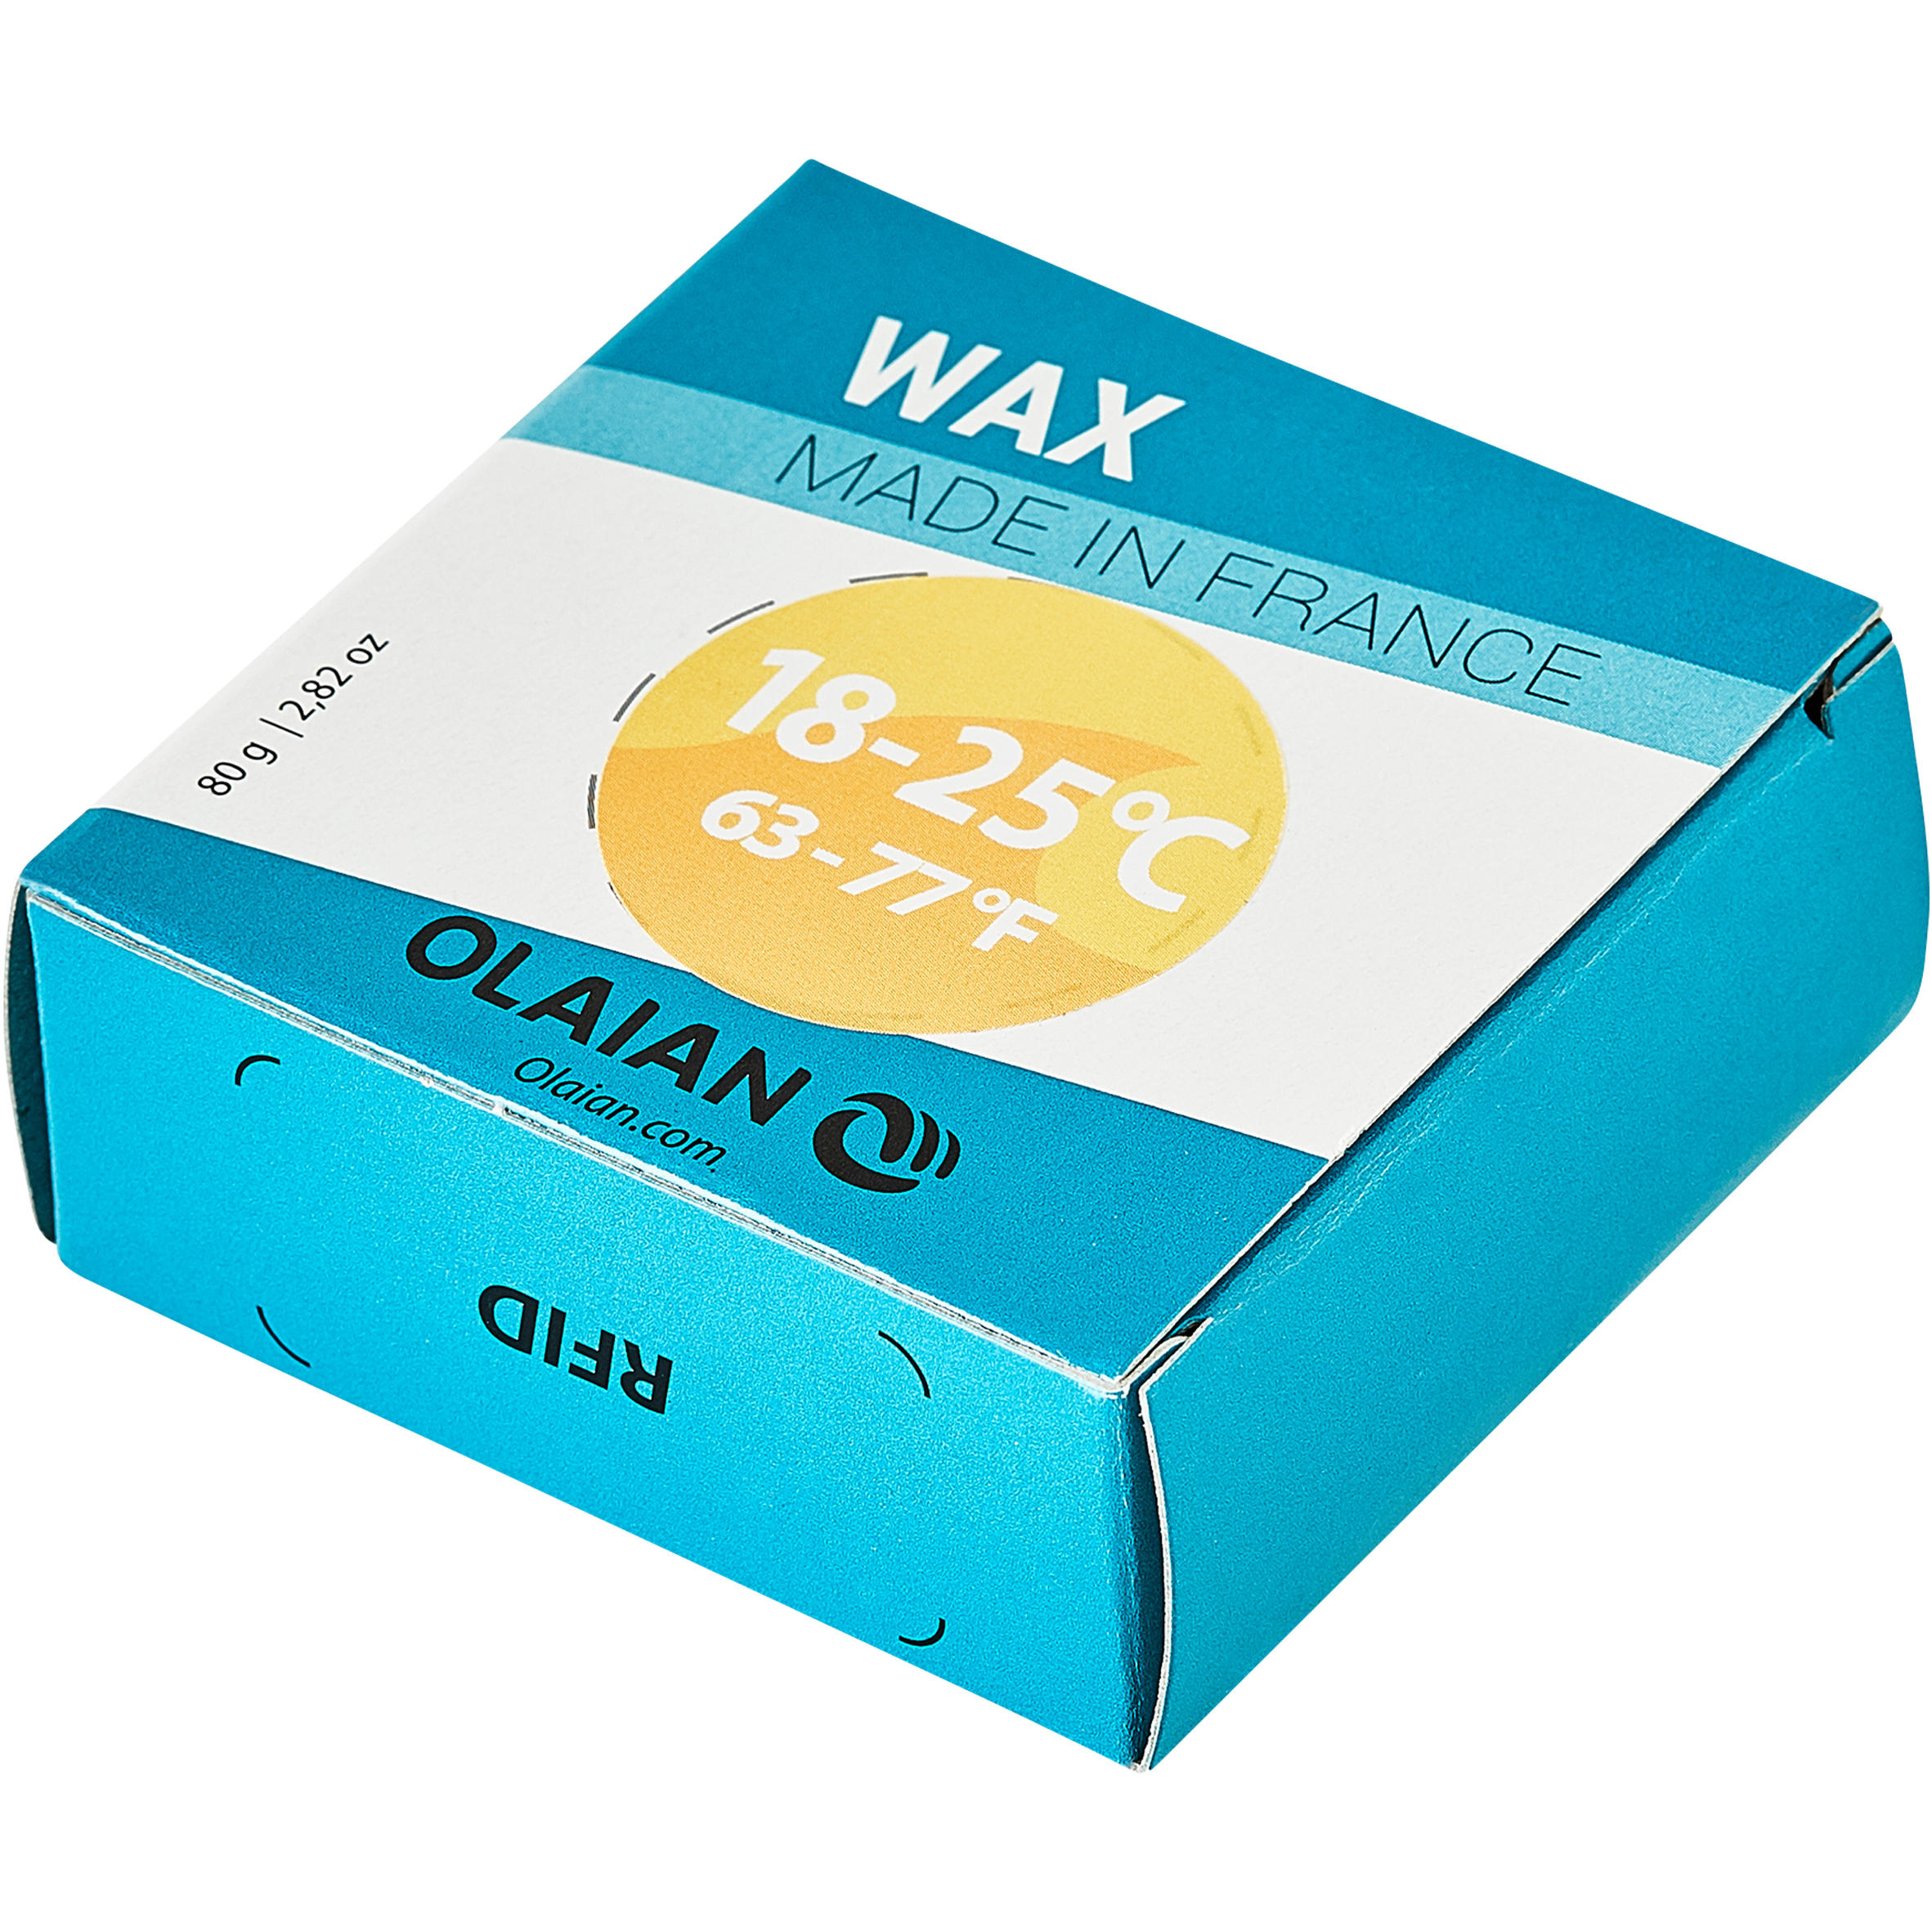 Temperate Water Surf Wax 18 25°C